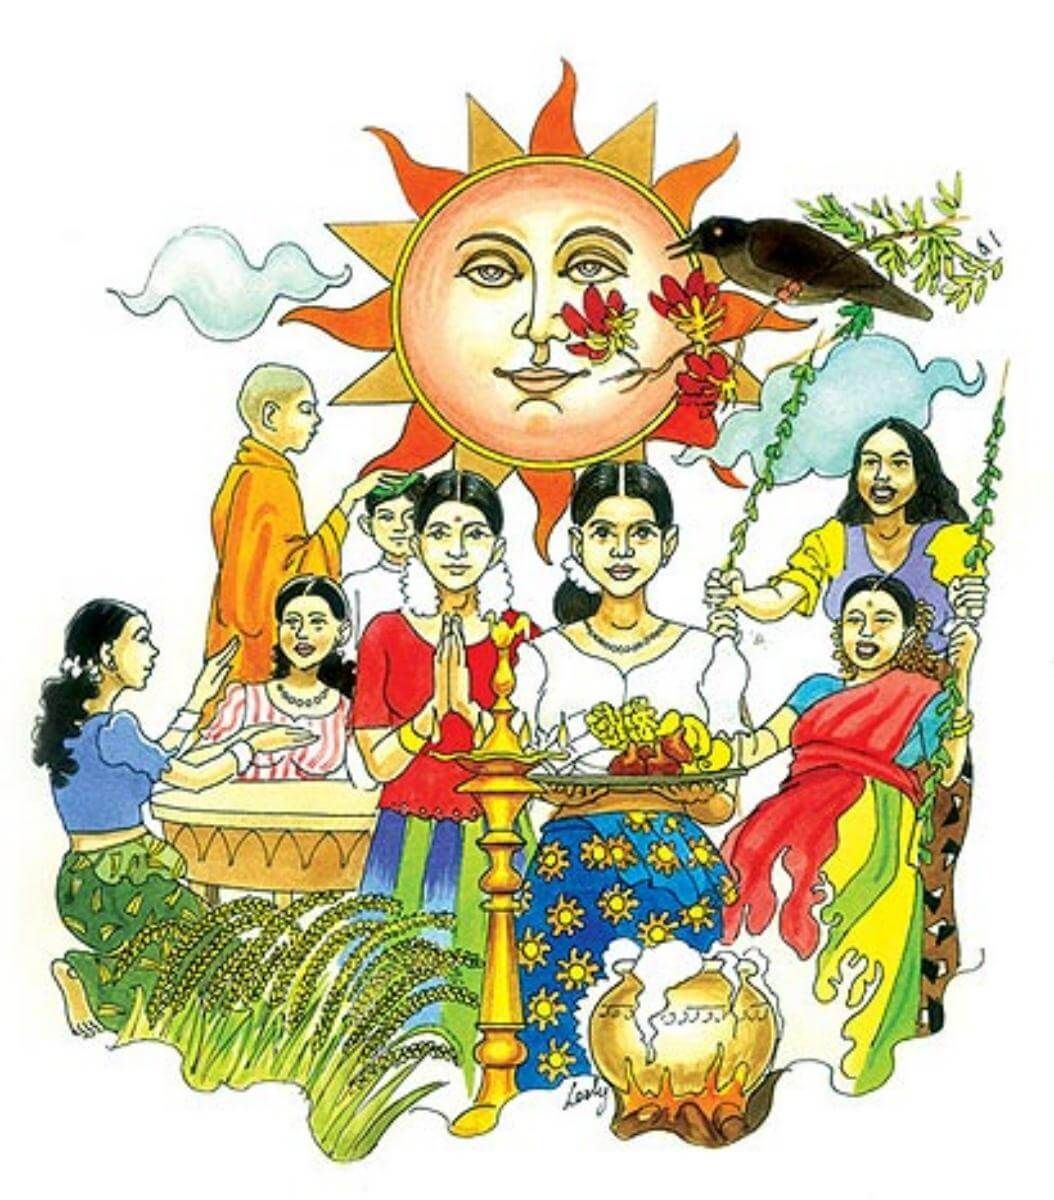 Sinhala New Year 2017 Is A Tamil New Year Festival Which Is Observed On 1st Day Of Sinhala Calendar New Sinhala New Year Wishes Wishes Images New Year Wishes